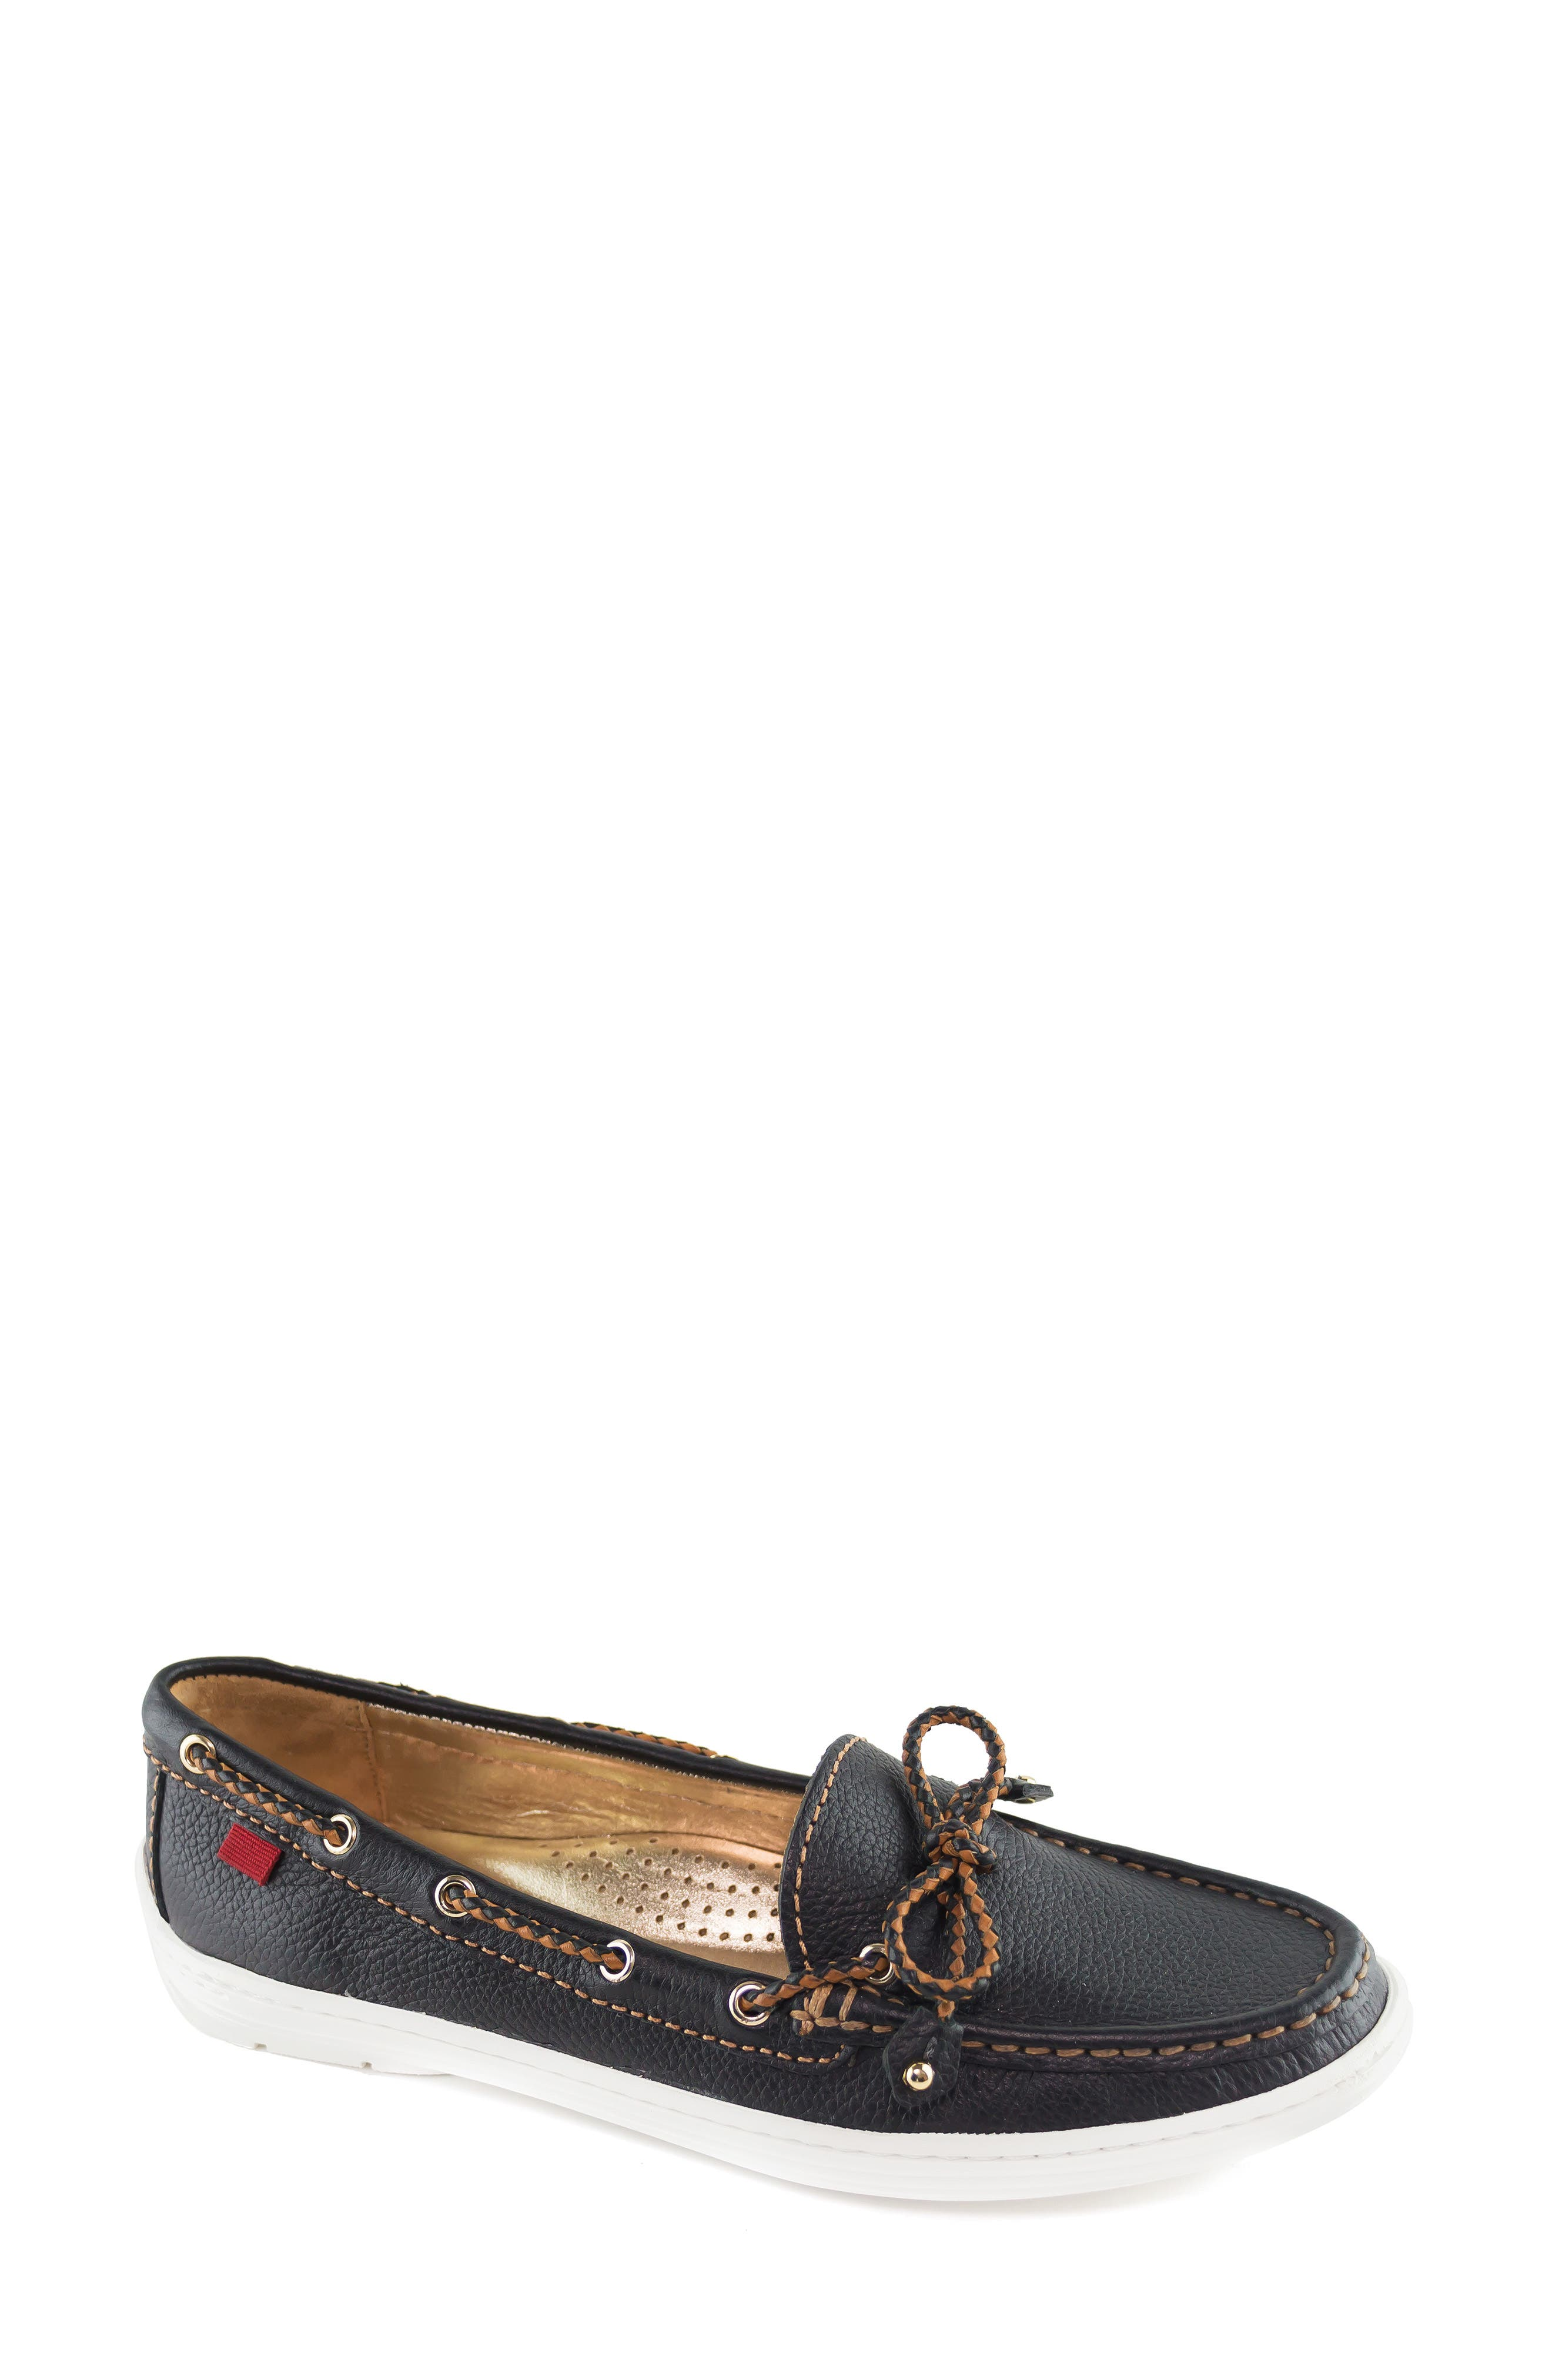 MARC JOSEPH NEW YORK, Pacific Loafer, Main thumbnail 1, color, BLACK LEATHER